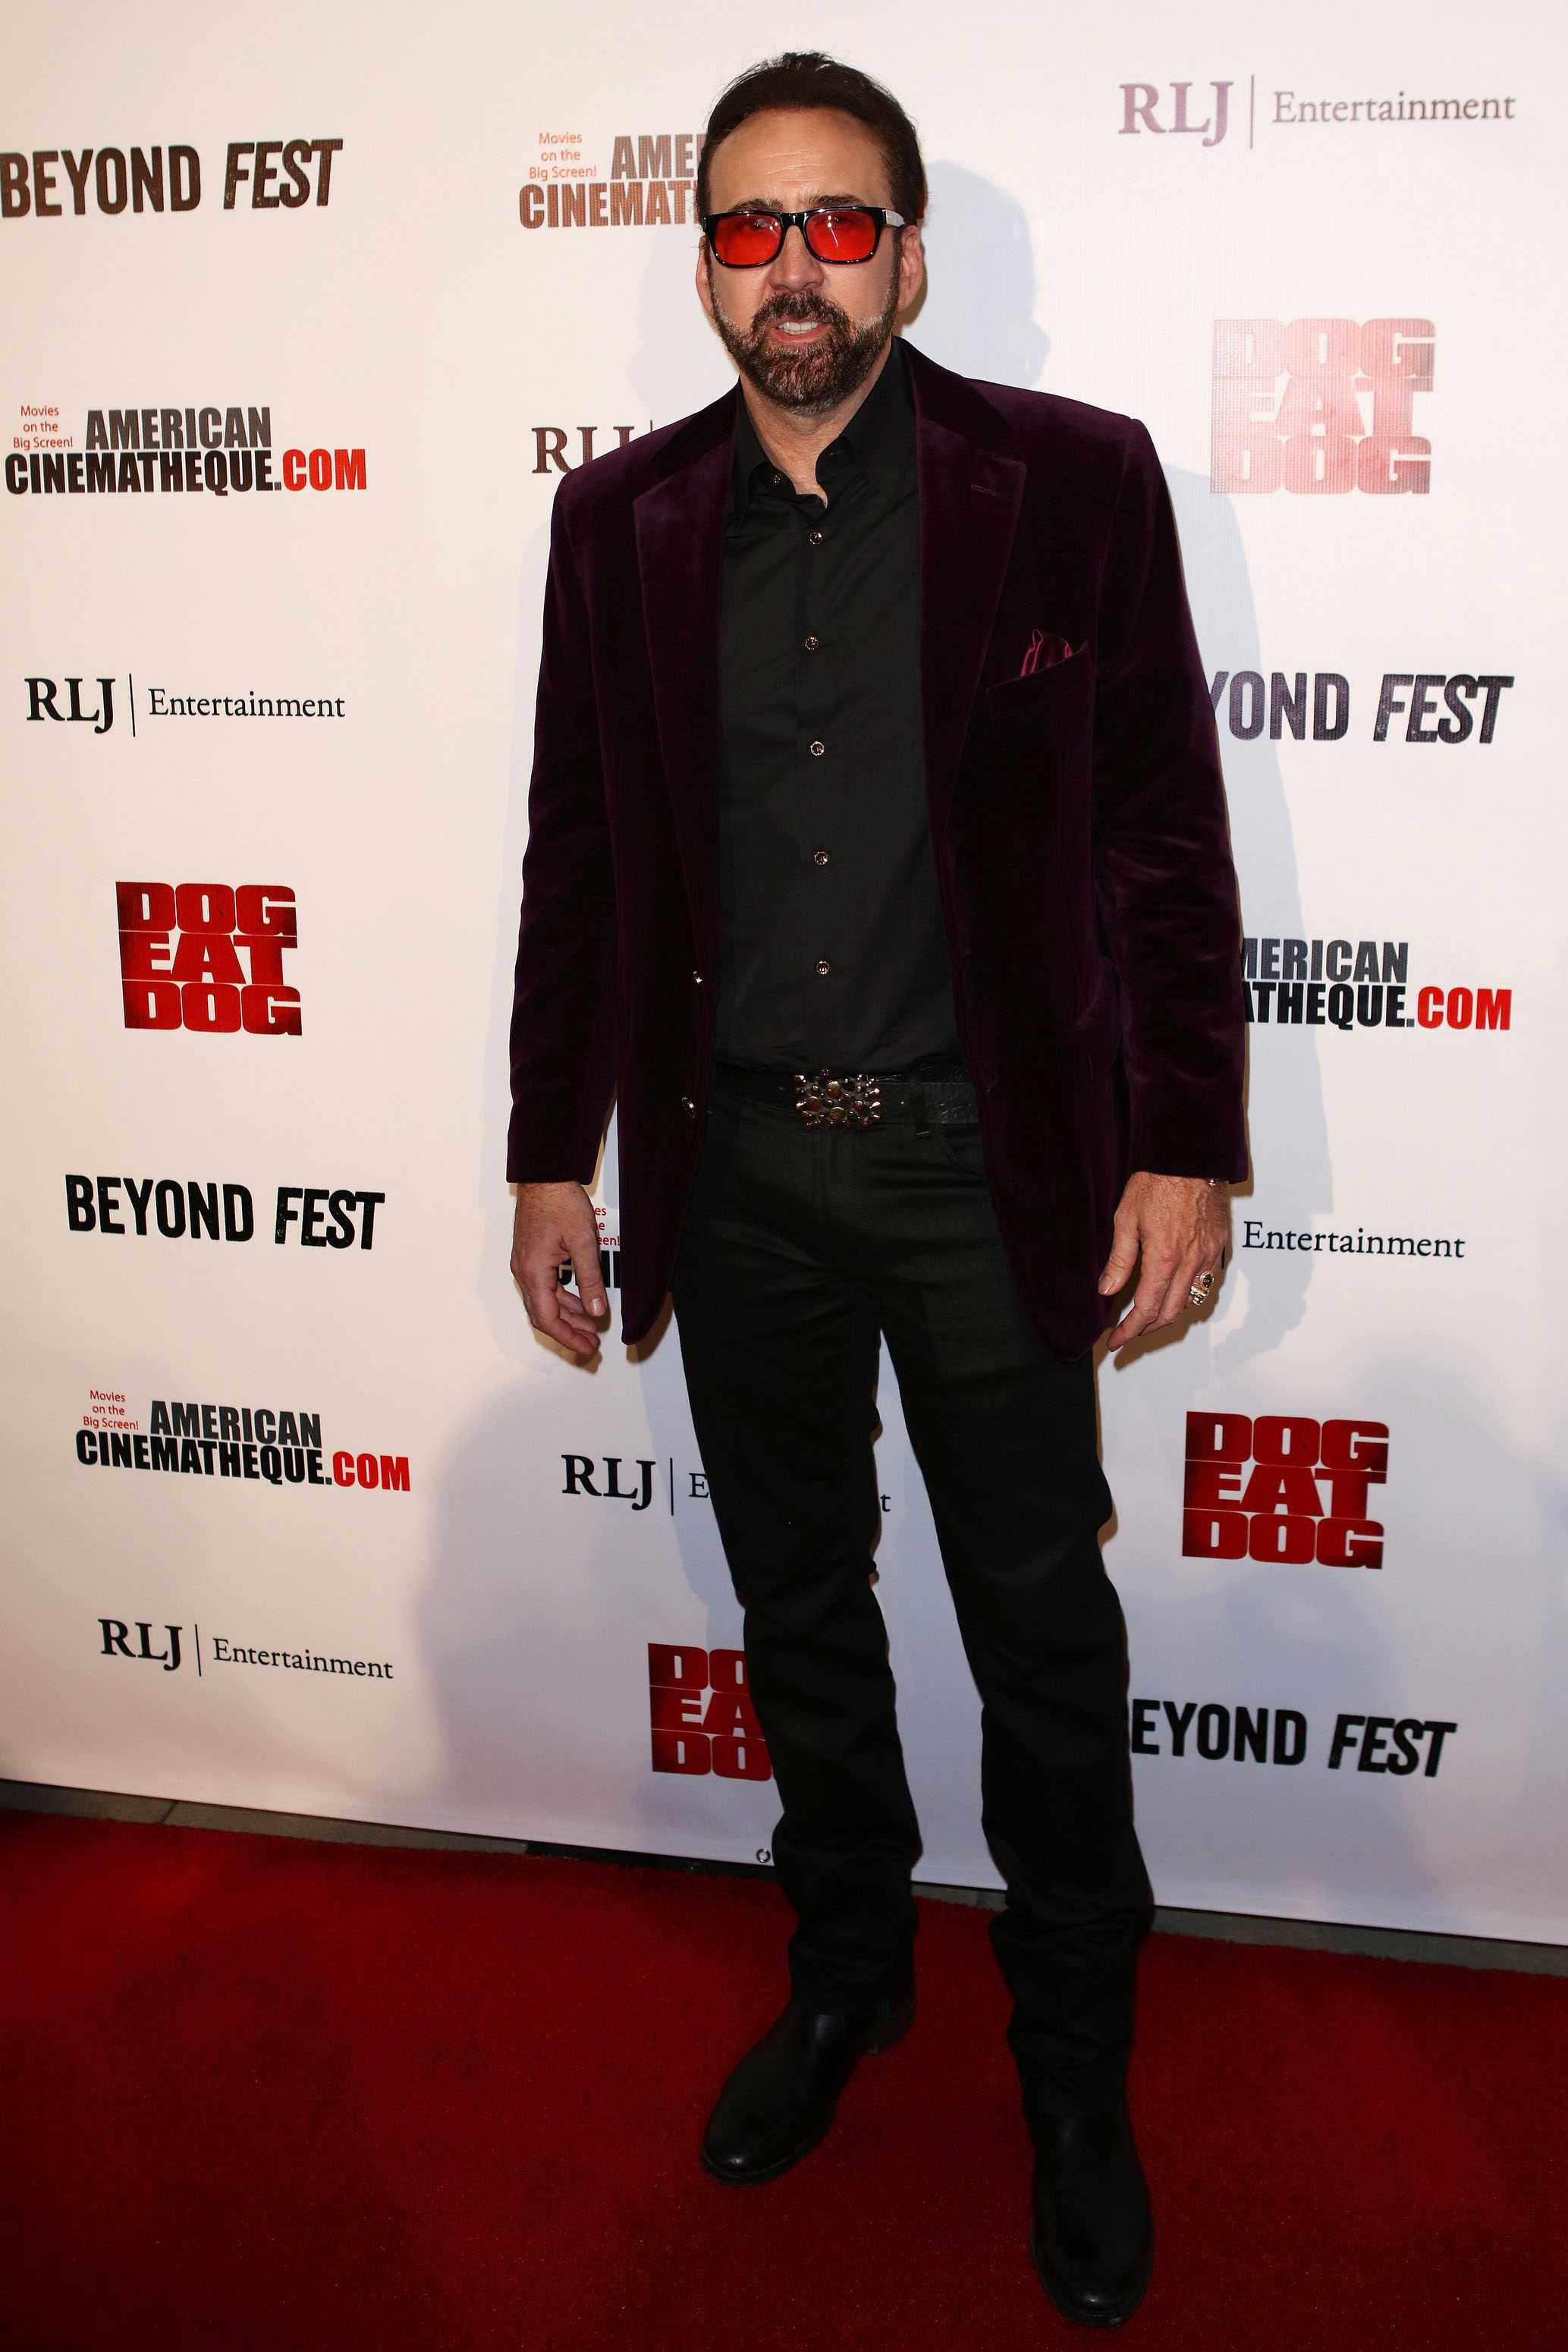 Nicolas Cage at the screening of 'Dog Eat Dog' held at the Egyptian Theatre on September 30, 2016 in Hollywood, Calif. (Art Garcia/Sipa USA/TNS)